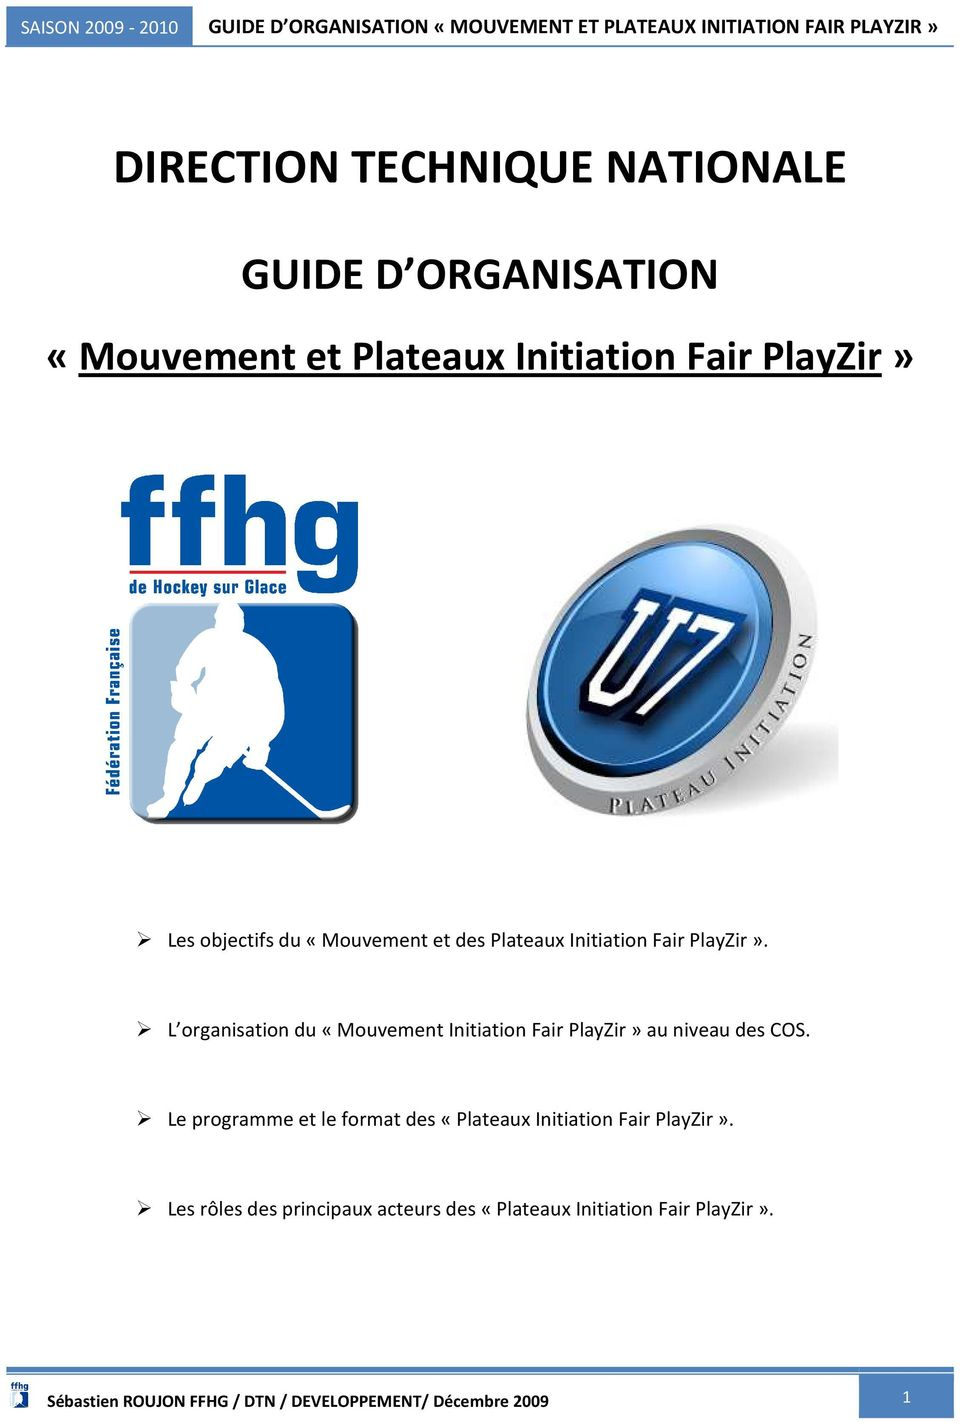 L organisation du «Mouvement Initiation Fair PlayZir» au niveau des COS.